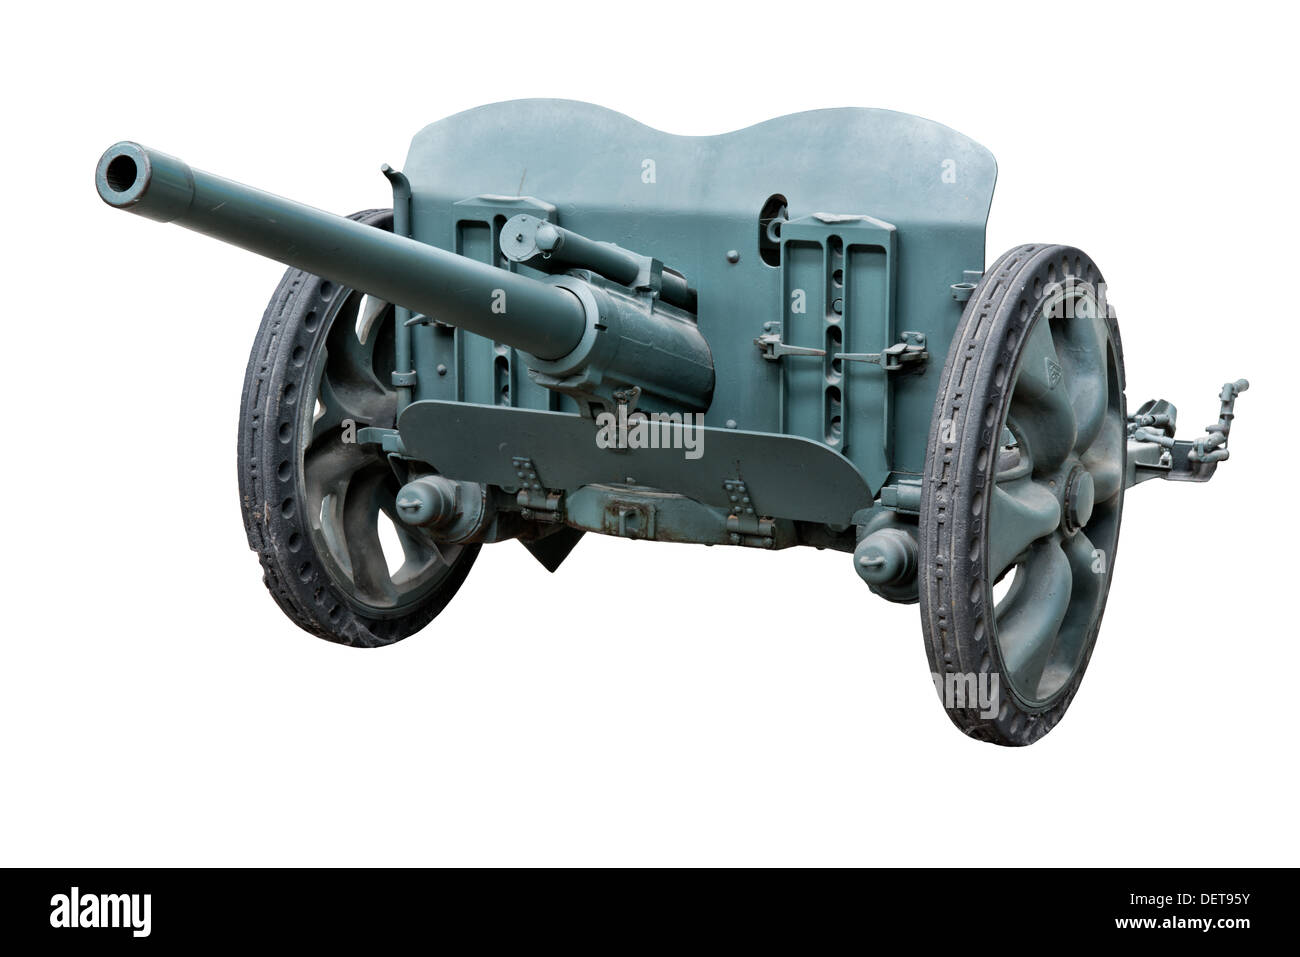 A 47mm APX SA 37 anti-tank gun used by French infantry forces at the outbreak of WW2 - Stock Image